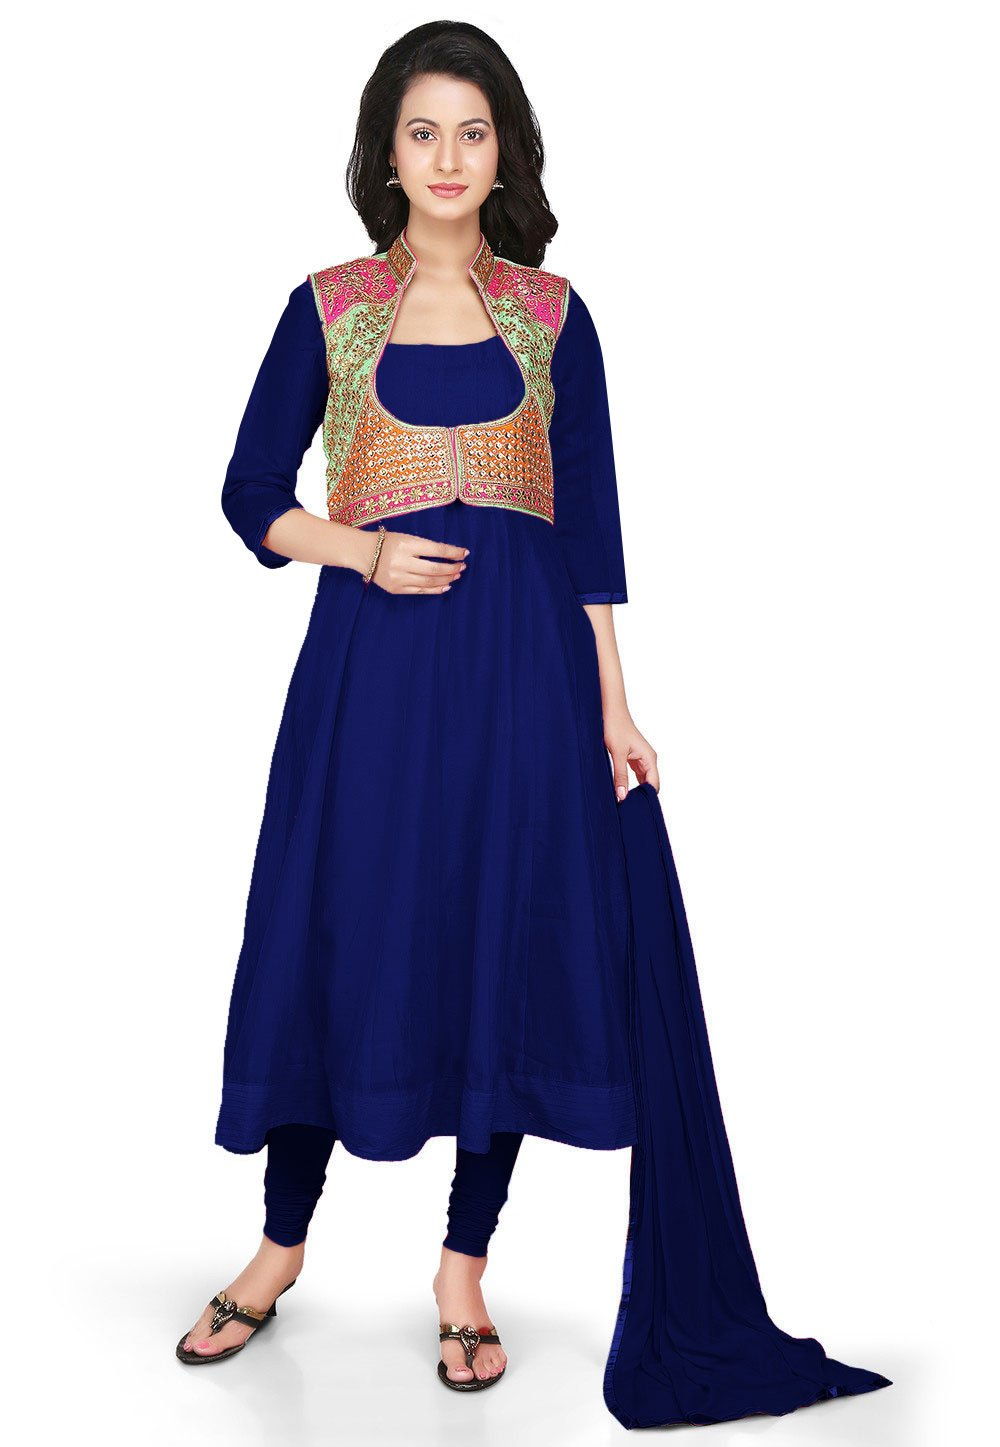 Utsav Fashion Chanderi Anarkali Suit in Dark Blue With Gota Patti Jacket by Utsav Fashion